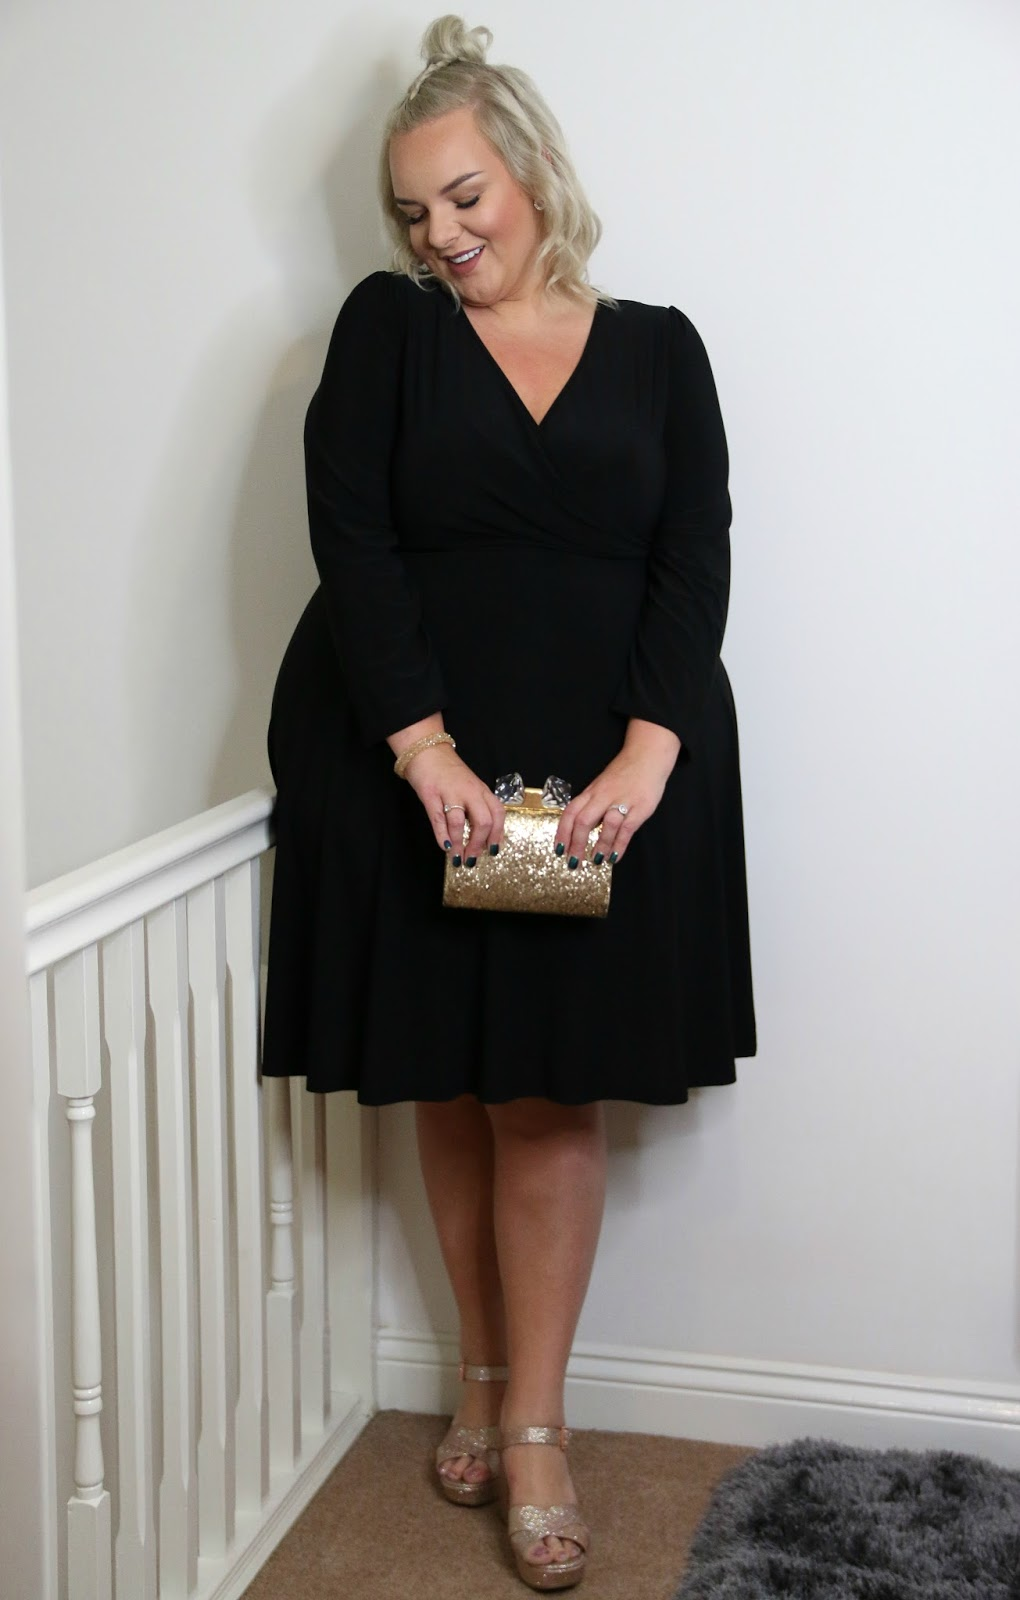 The Lady Voluptuous Black Lyra Dress from Yours Clothing on UK Plus Size Blogger WhatLauraLoves